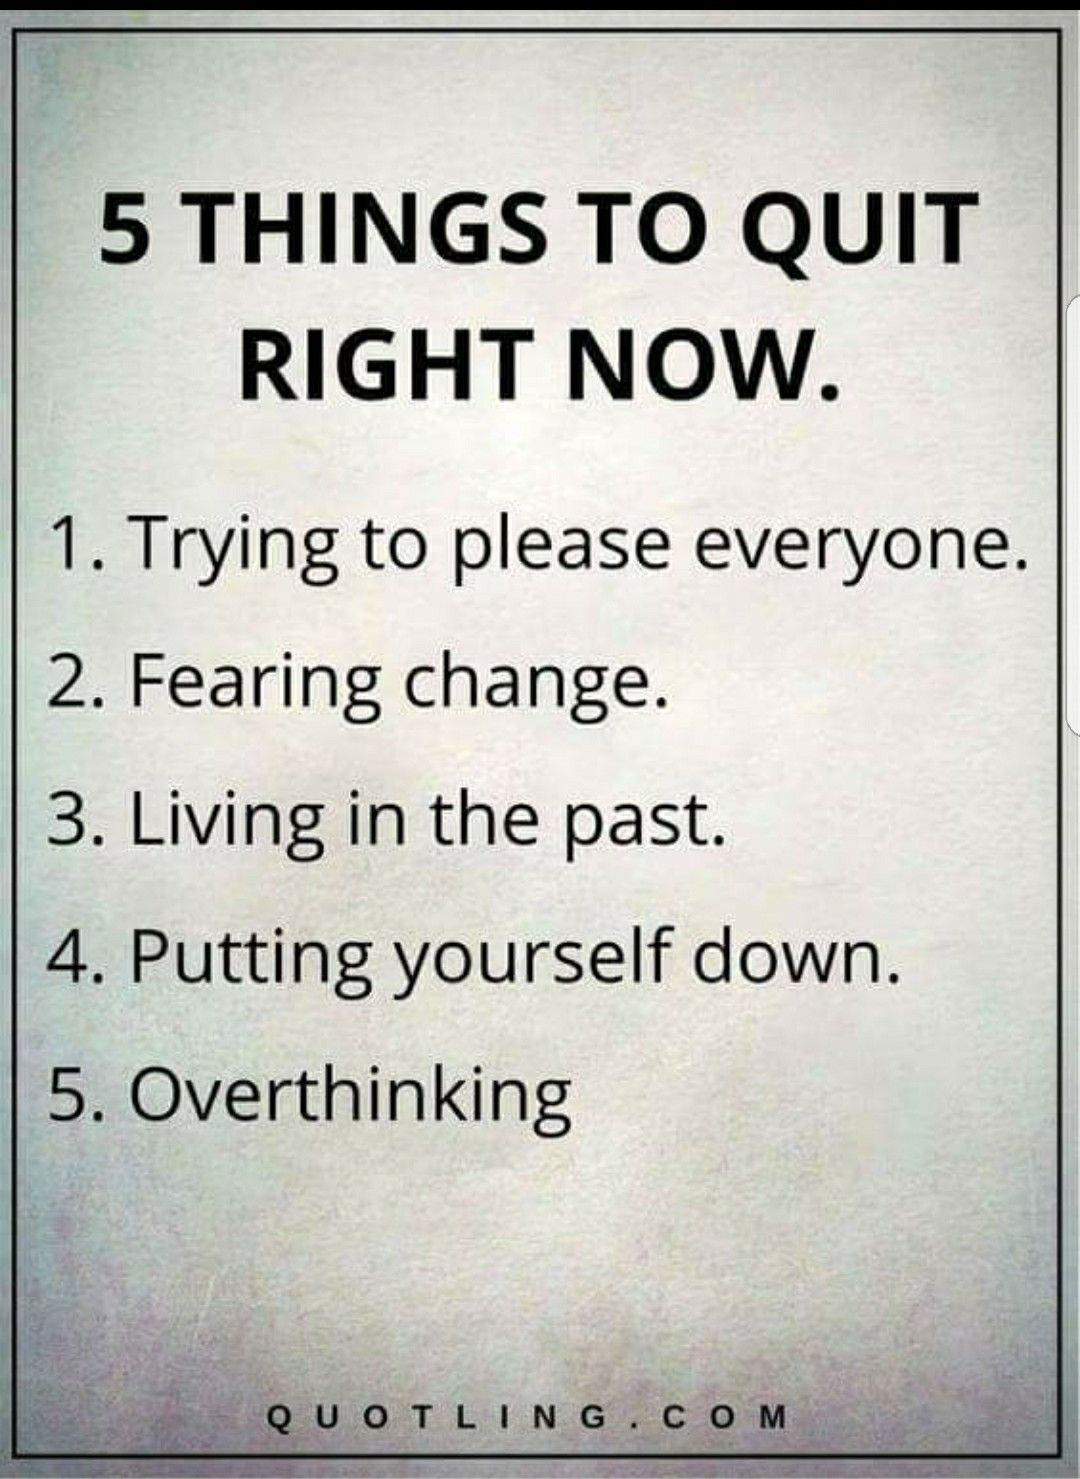 Life Lessons 5 THINGS TO QUIT RIGHT NOW. Living In The Past. Putting  Yourself Down.